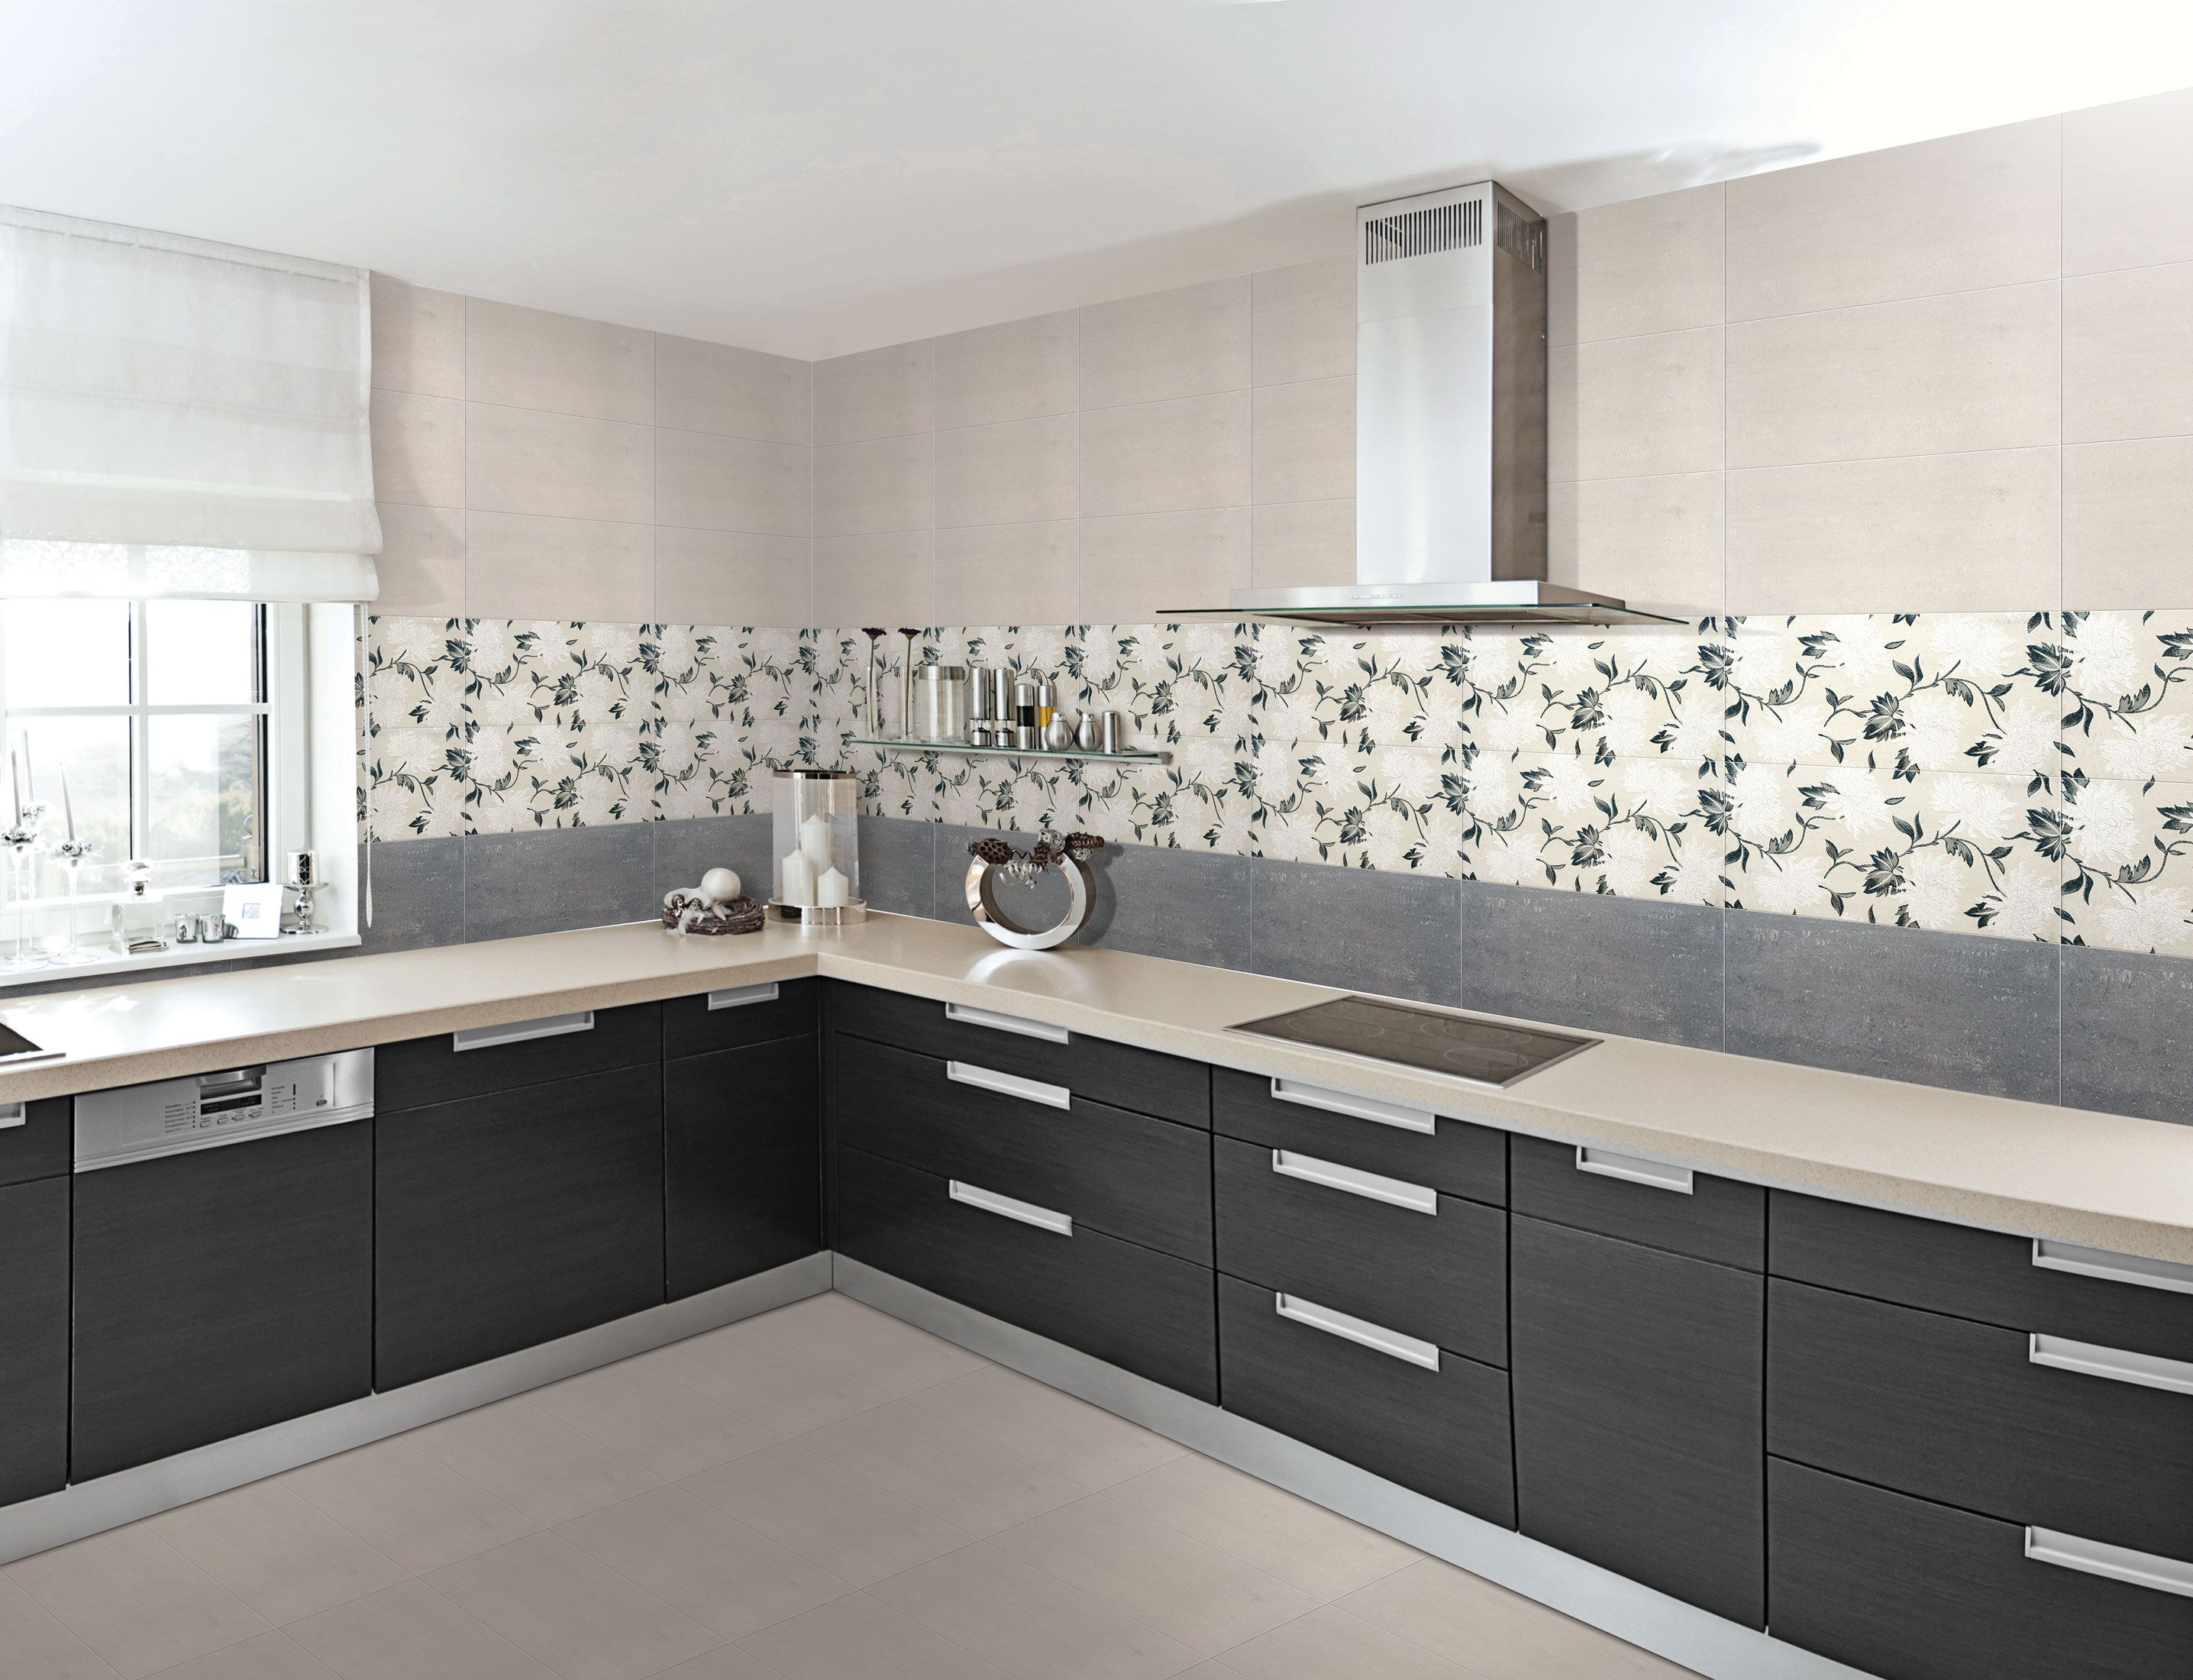 Kitchen Design Tiles buy designer floor, wall #tiles for bathroom, bedroom, #kitchen